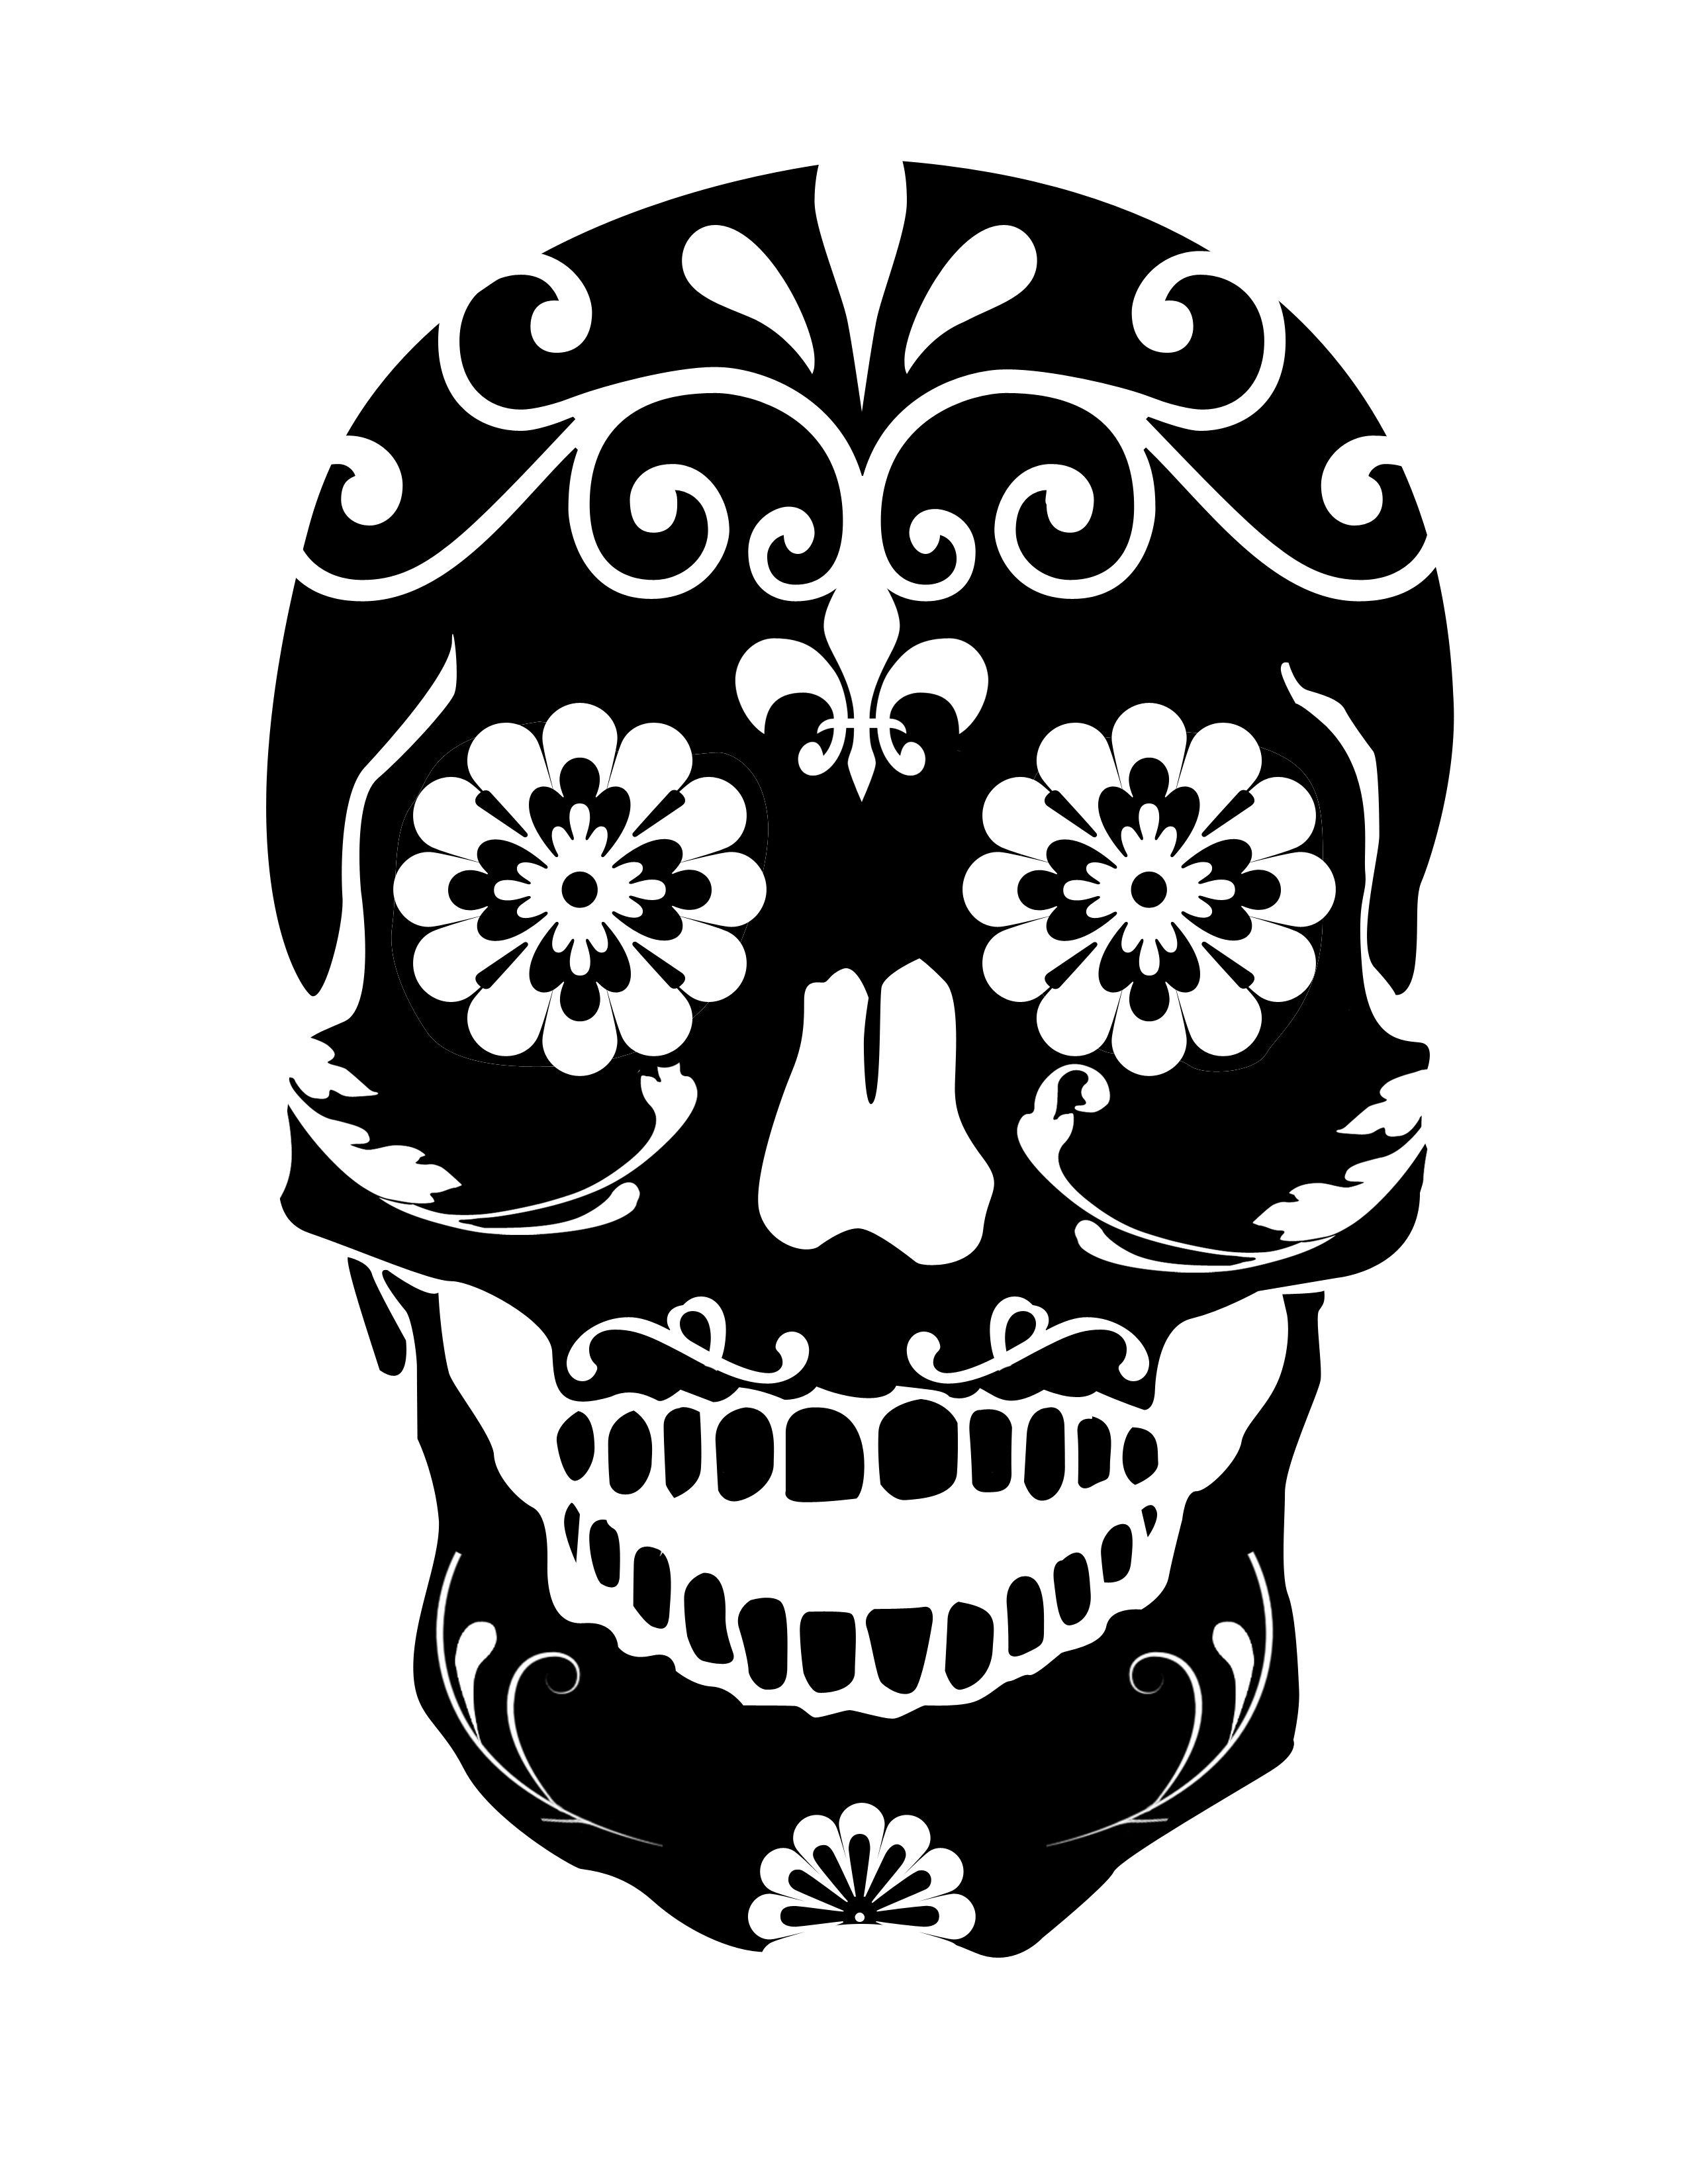 sugar skull template sugar skull drawing template at getdrawings free download sugar skull template